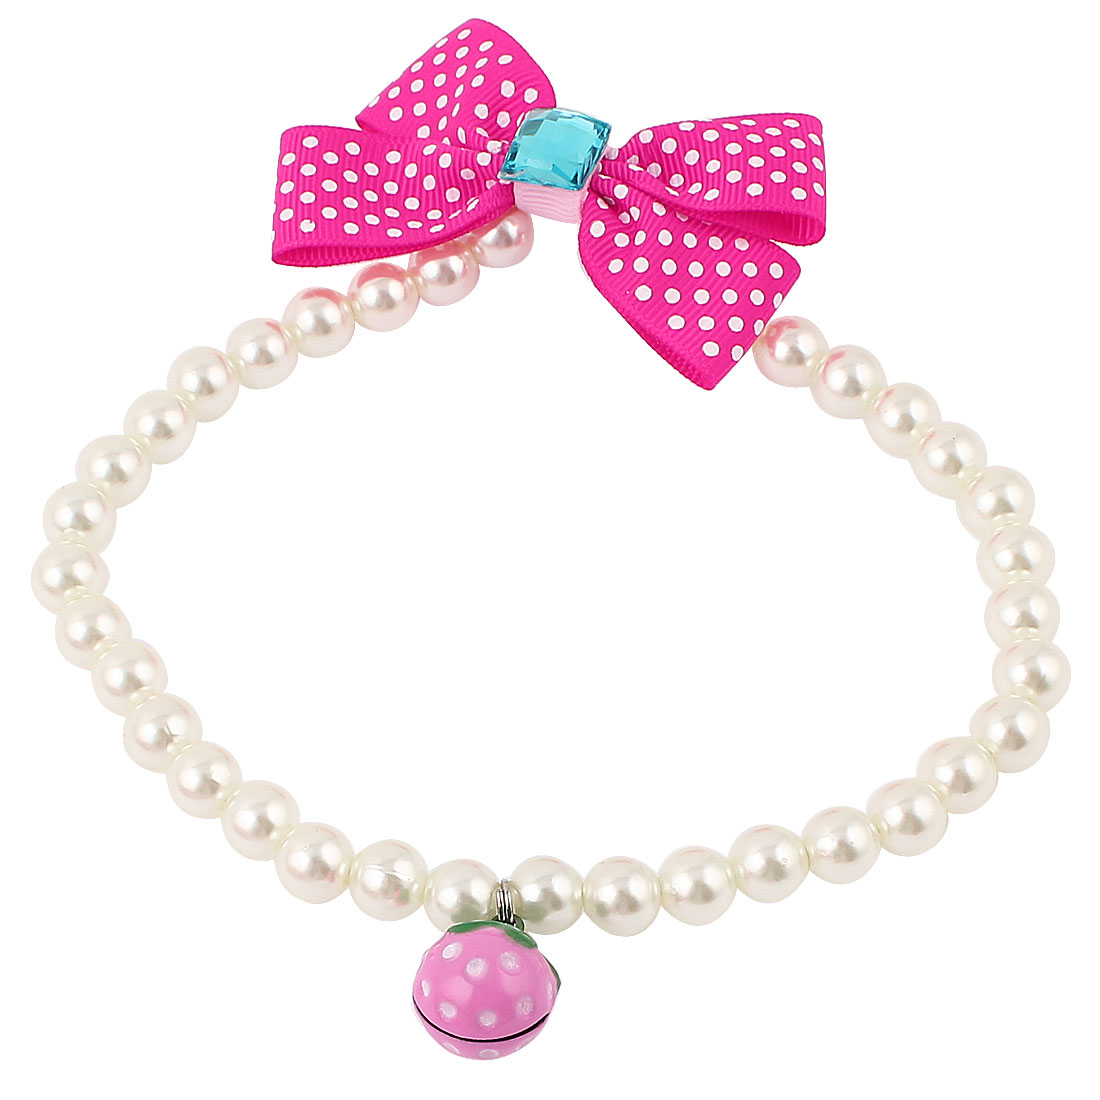 Metal Bell Pendant Bowtie Accent Pet Dog Plastic Beads Imitation Pearls Collar Necklace White Fuchsia L